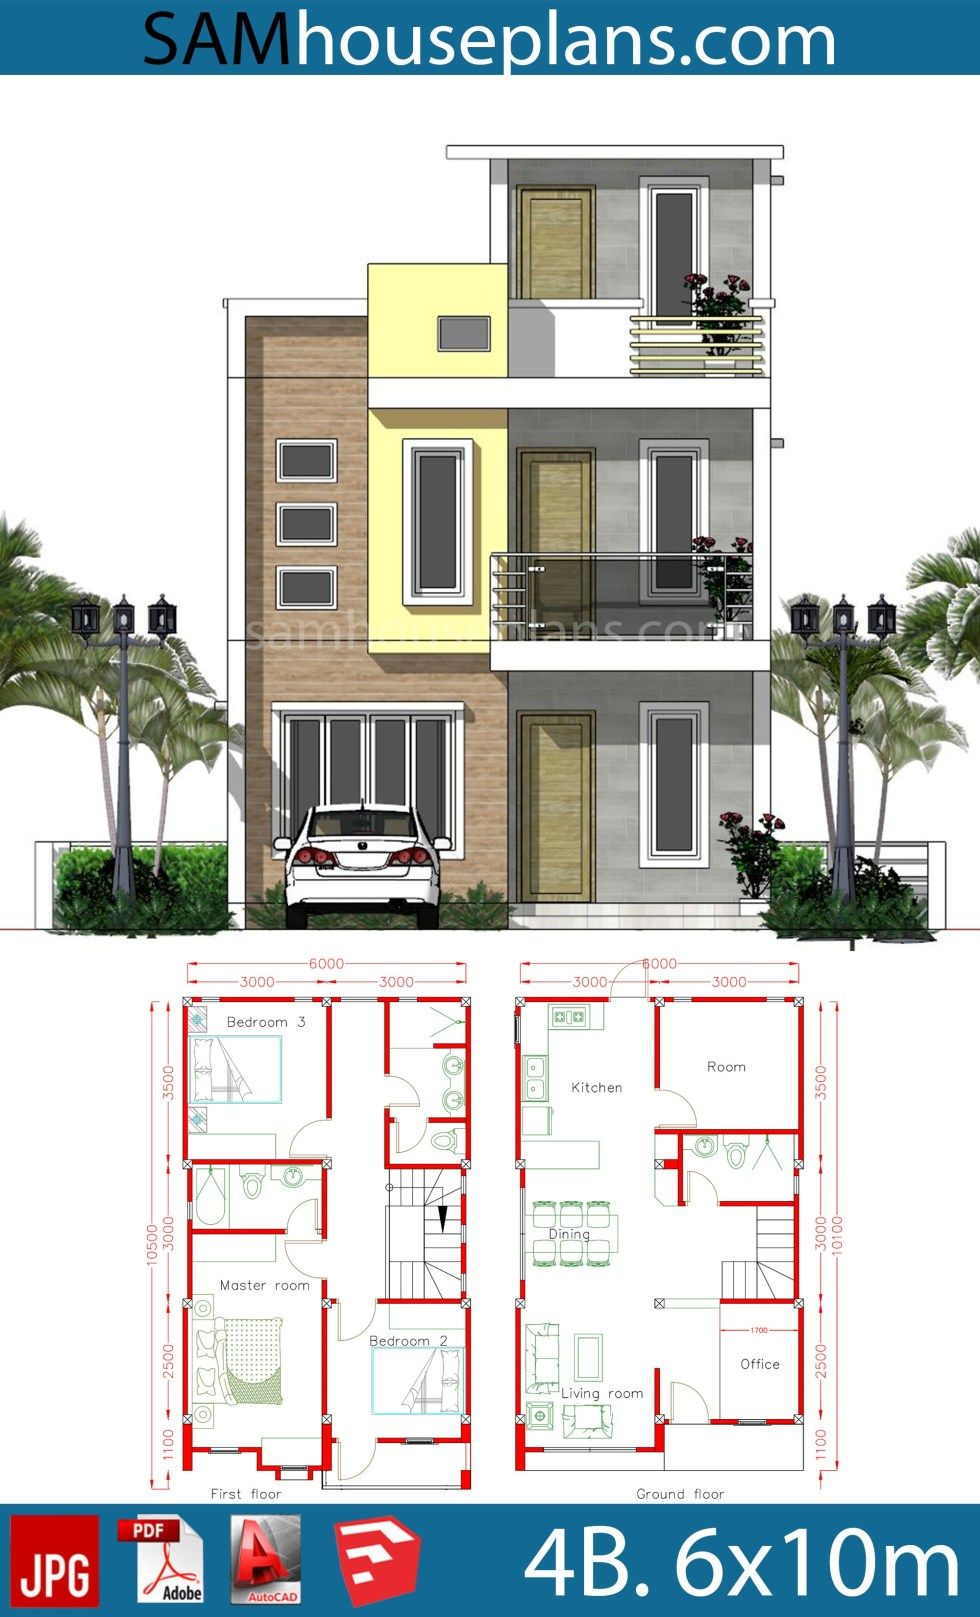 House Plans 6x10m With 4 Rooms Sam House Plans 2bhk House Plan Duplex House Plans 20x30 House Plans